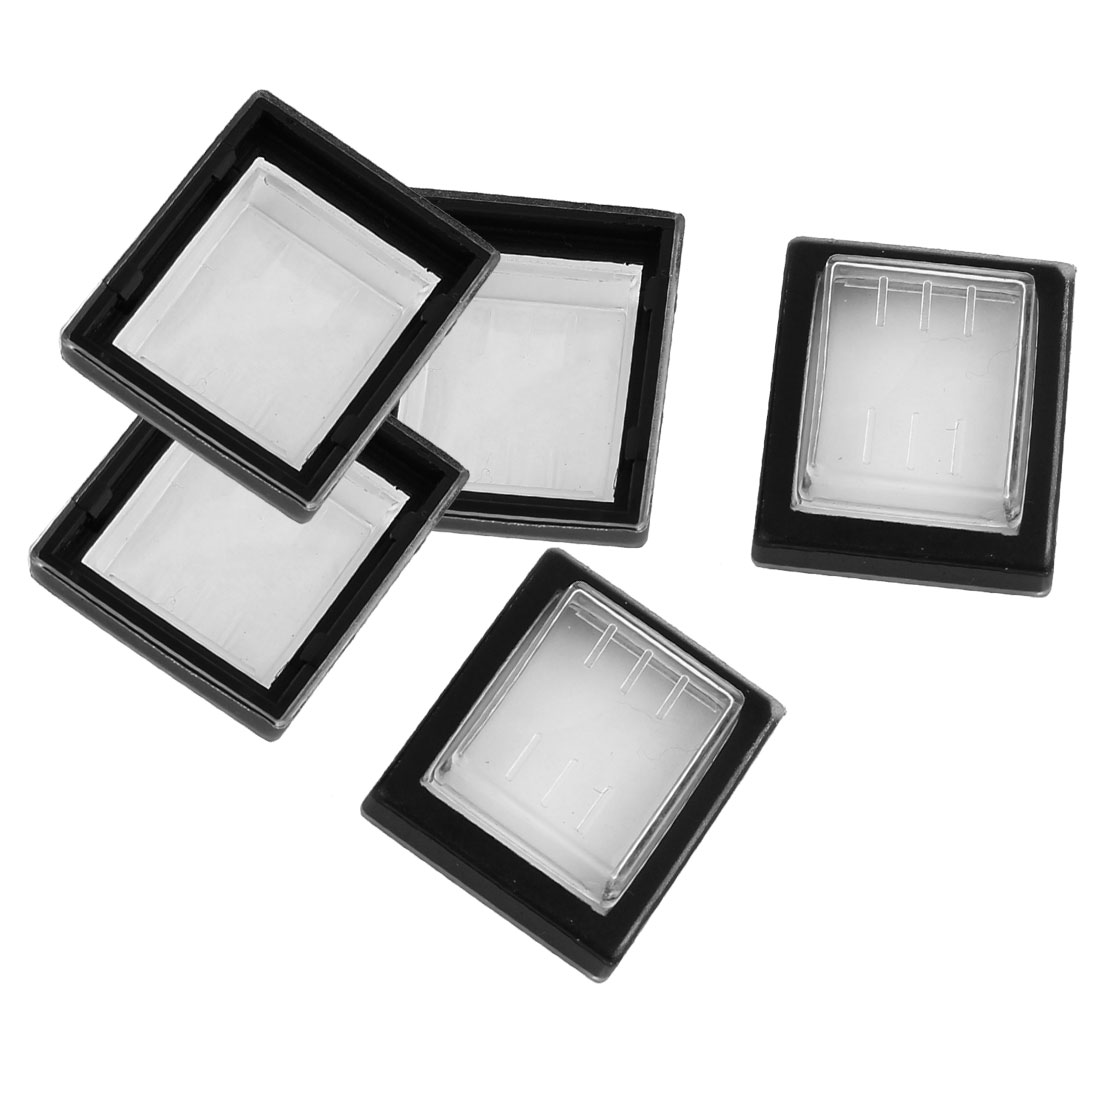 5 Pcs Clear Black Silicone Waterproof Rocker Switch Protect Cover Rectangle Cap